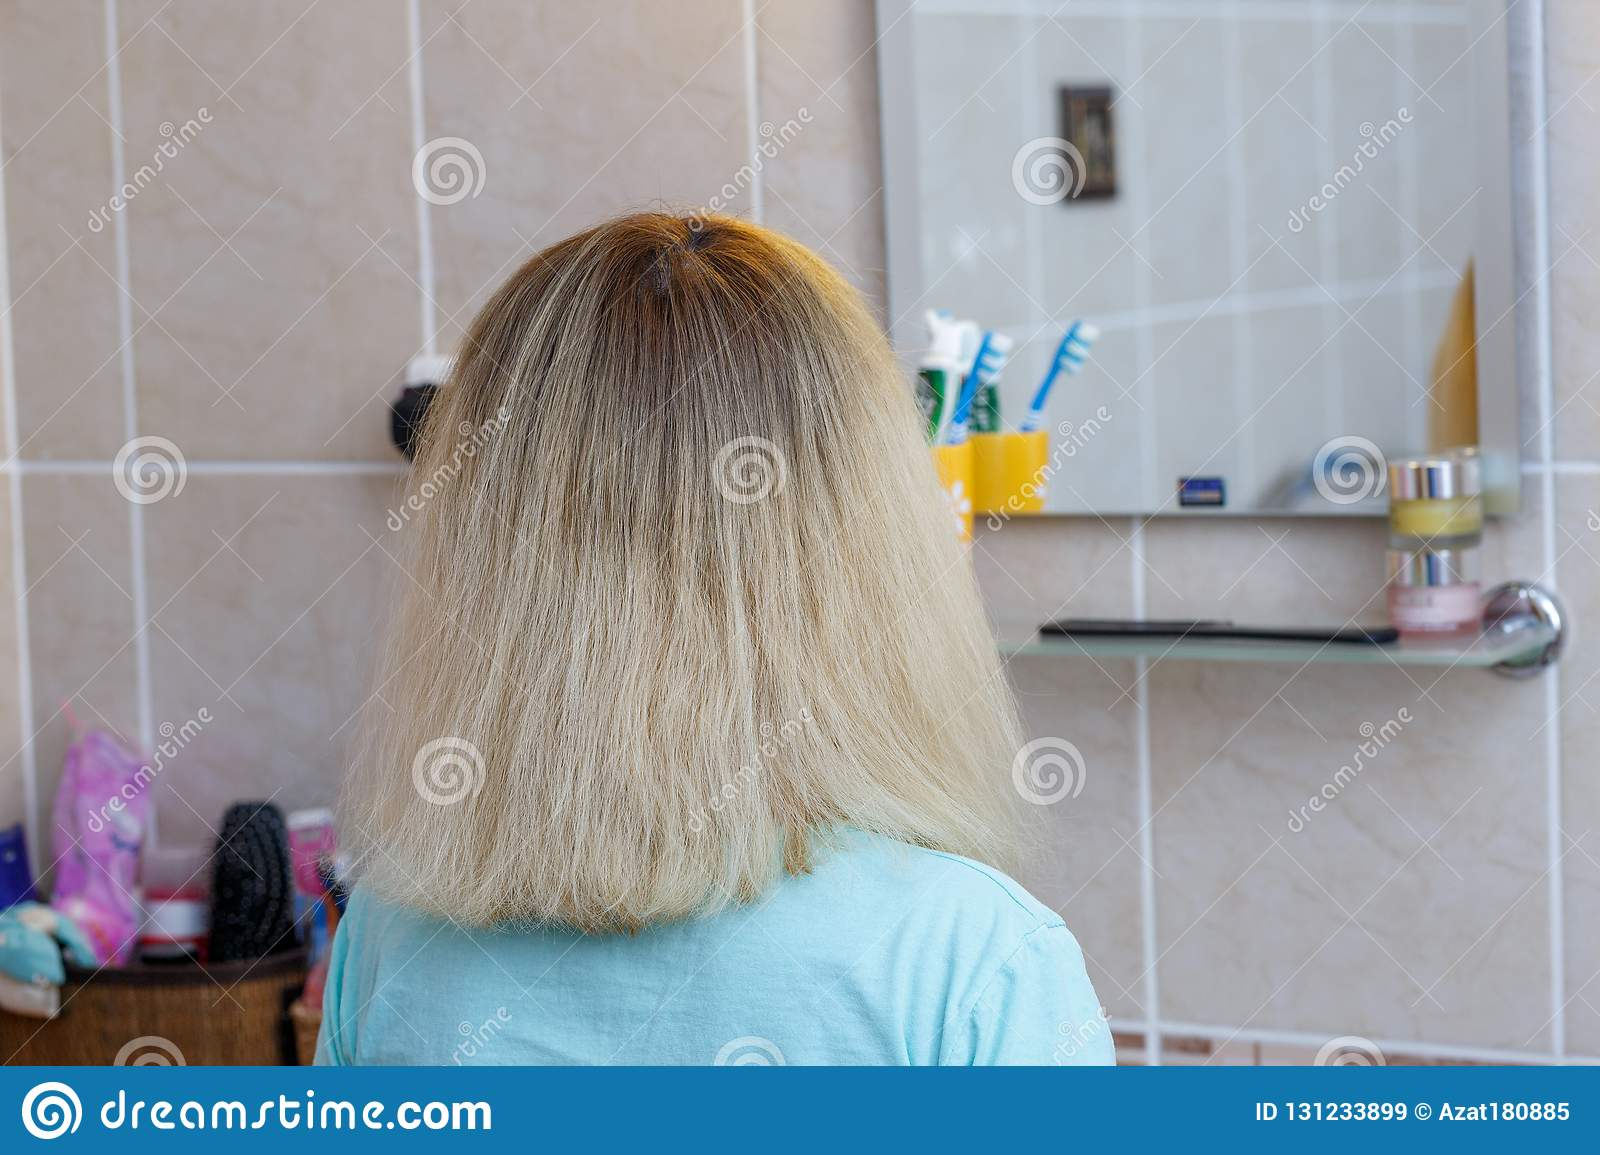 Young woman with blond hair combing her hair at home in the bathroom